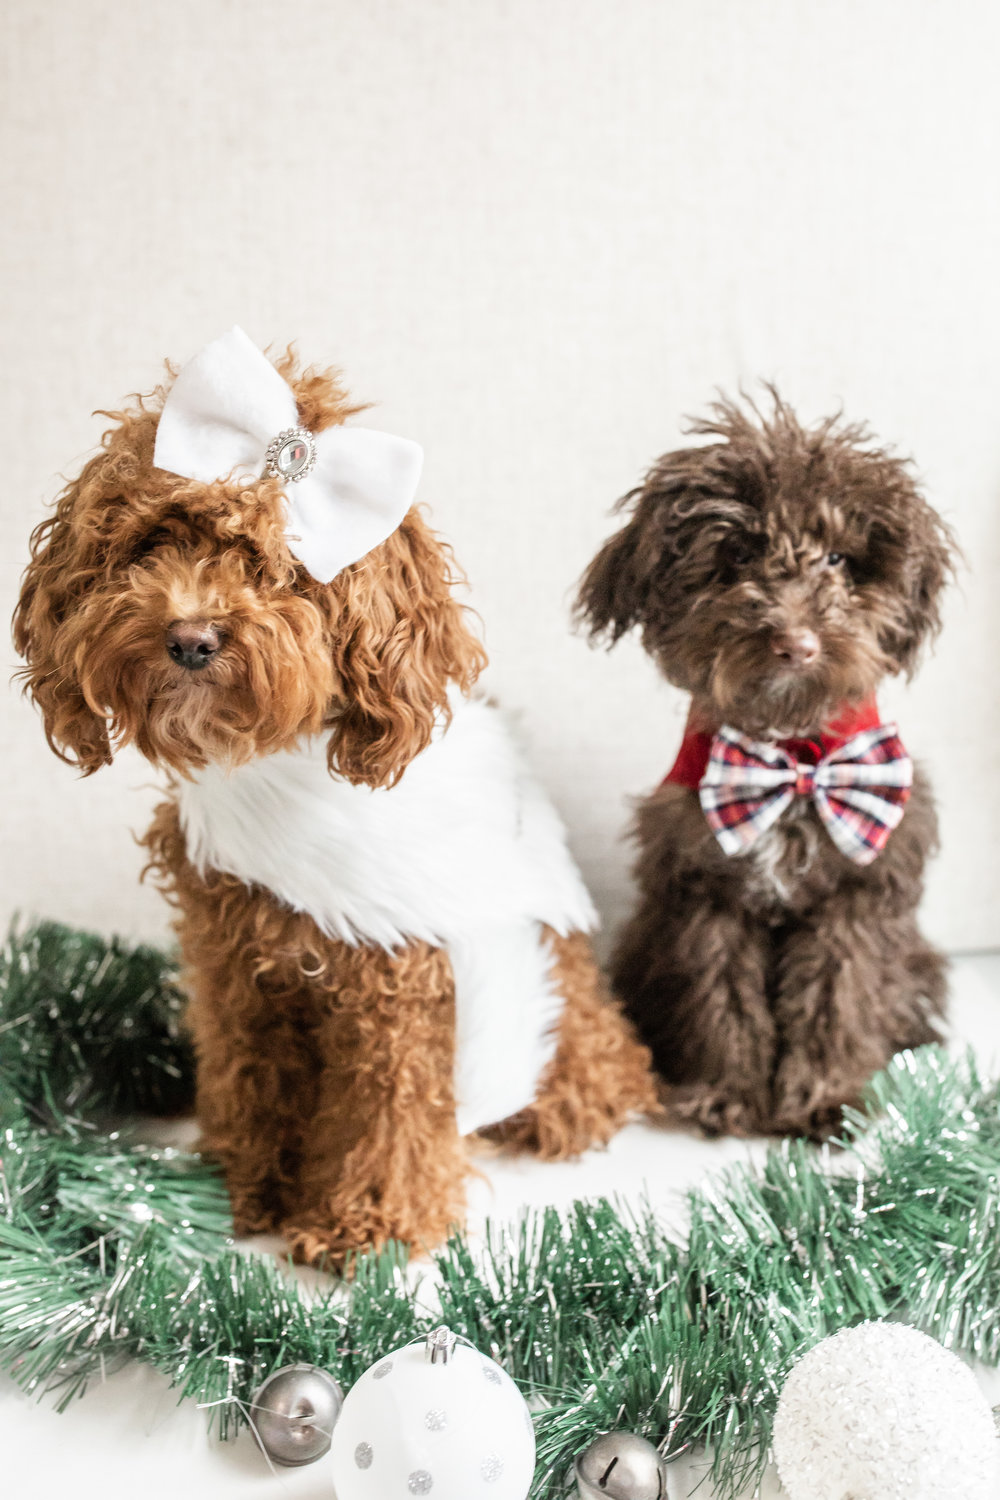 WillowAndWinston_Christmas2018-83.jpg